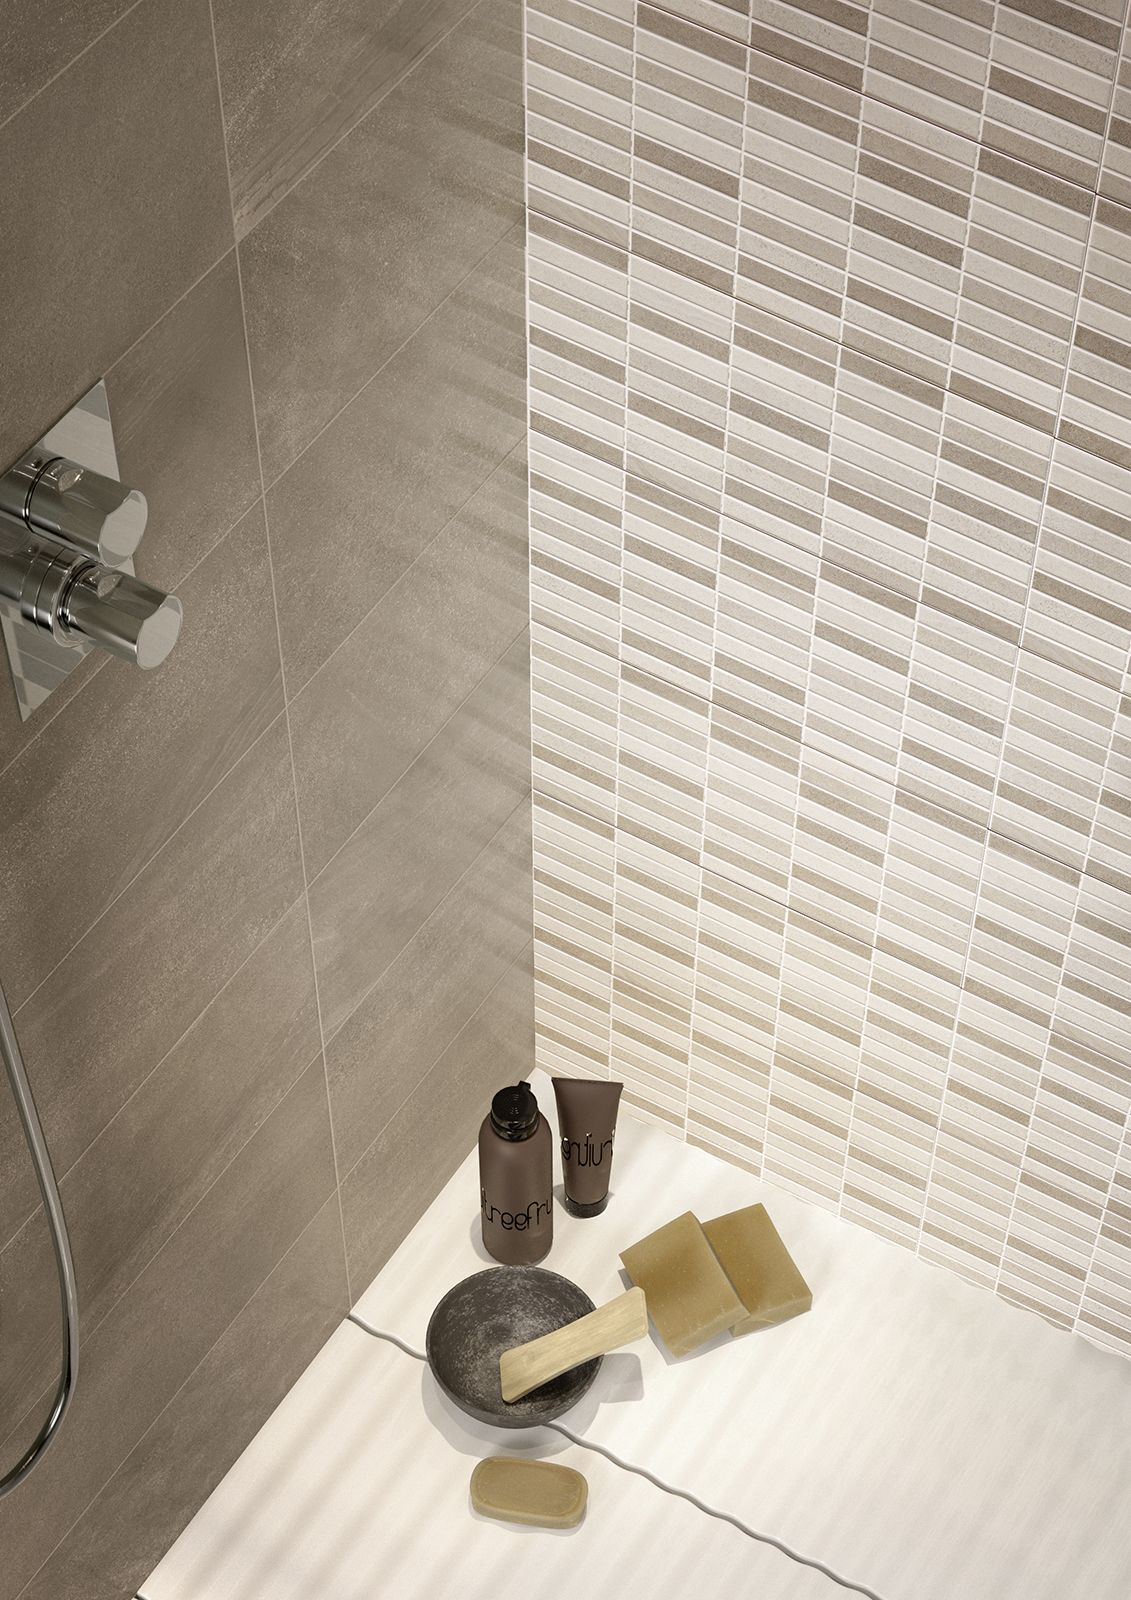 Interiors – Bathroom and kitchen covering | Marazzi | at home ...